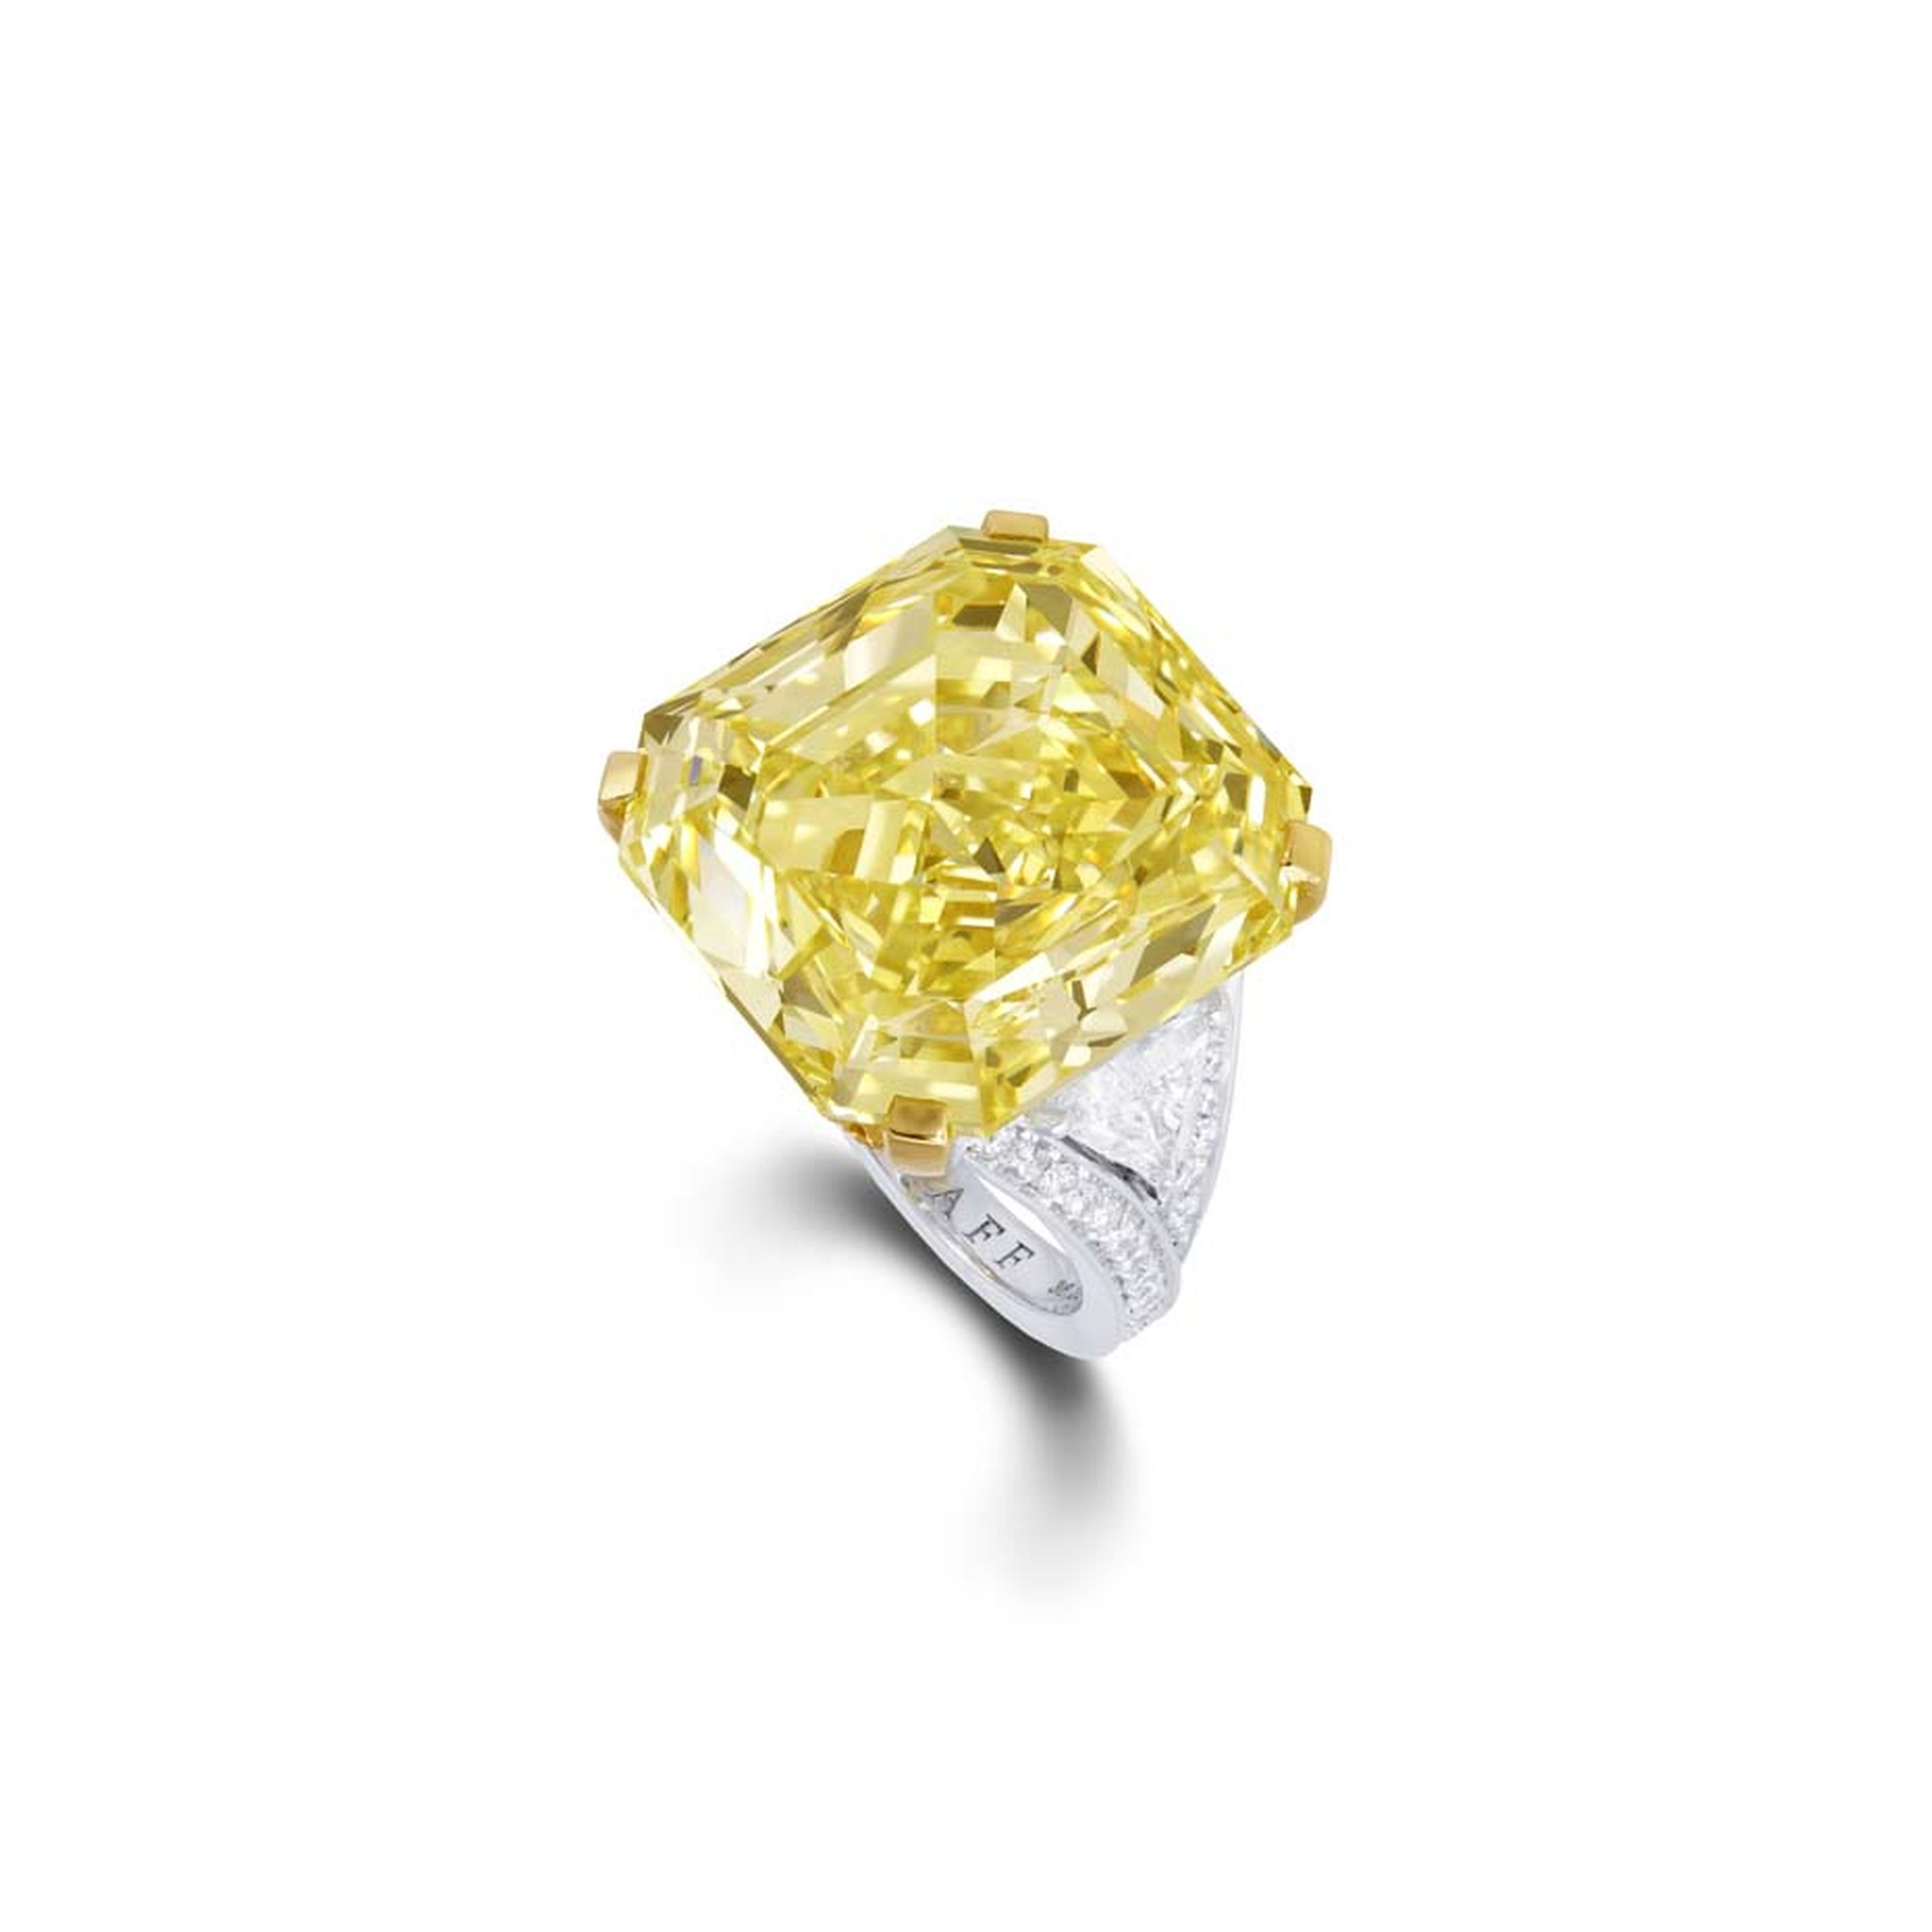 A striking 36.23ct emerald-cut Fancy Intense yellow diamond ring from Graff with brilliant diamond shoulders, set in platinum.